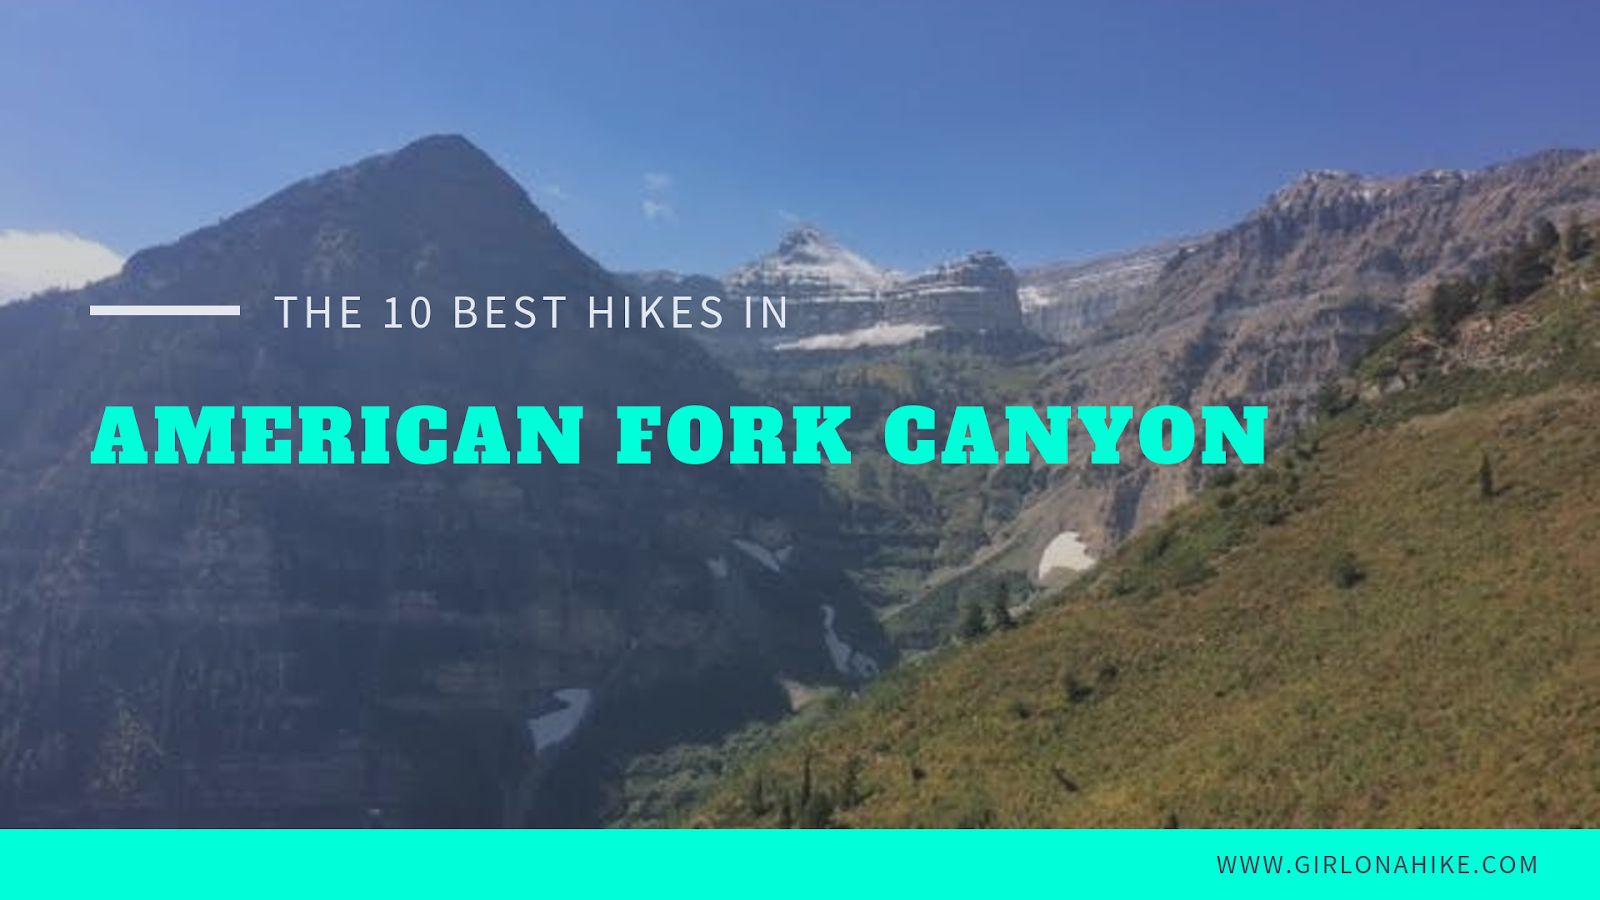 The Top 10 Hikes in American Fork Canyon, American fork canyon best hikes and trails, best views in American fork canyon